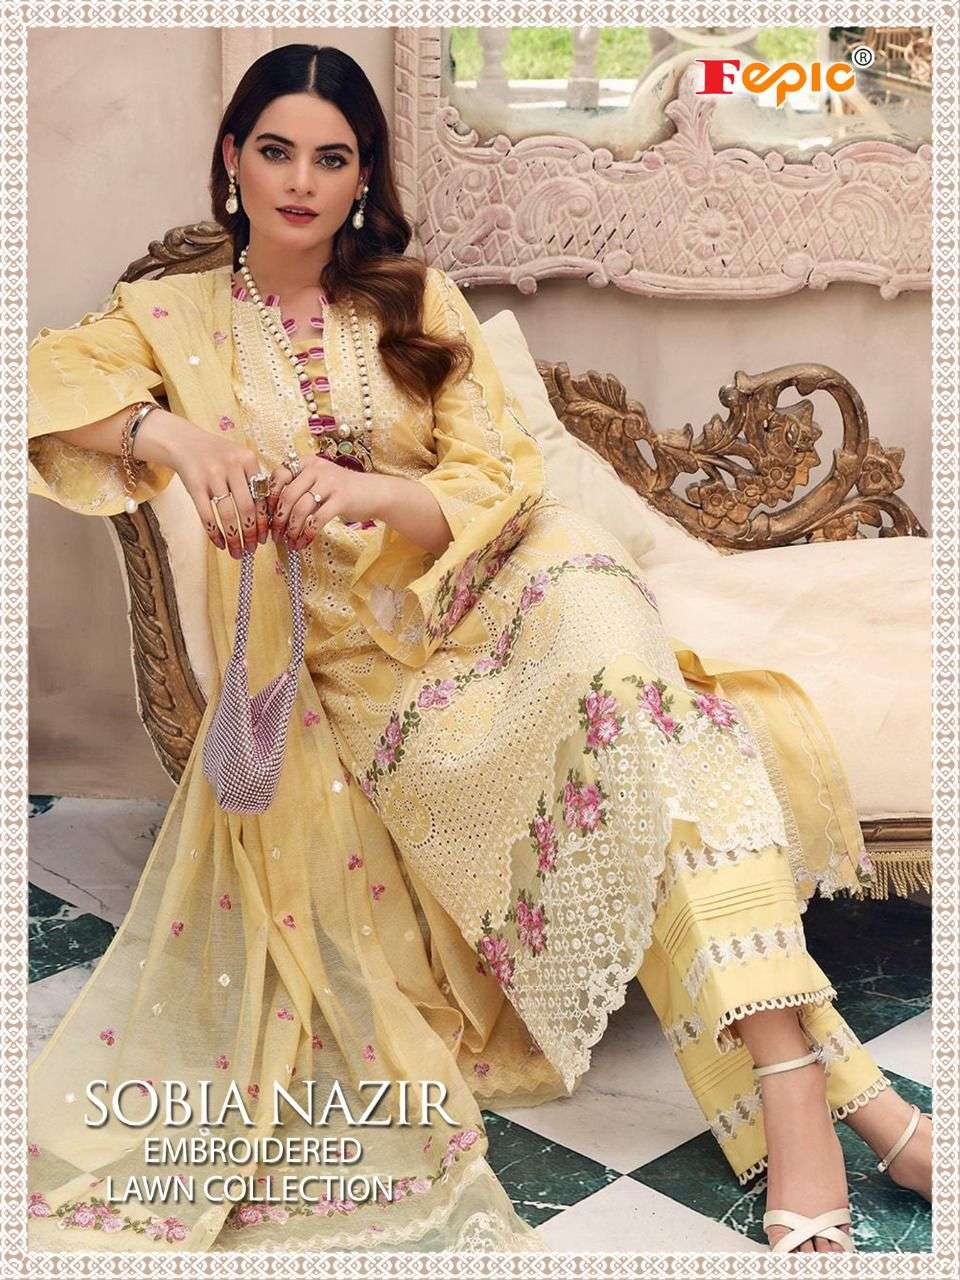 FEPIC ROSEMEEN SOBIA NAZRIR EMBROIDERY LAWN COLLECTION DESIGNER PURE COTTON WITH EMBROIDERY WORK PARTYWEAR PAKISTANI REPLICA SUITS WHOLESALE